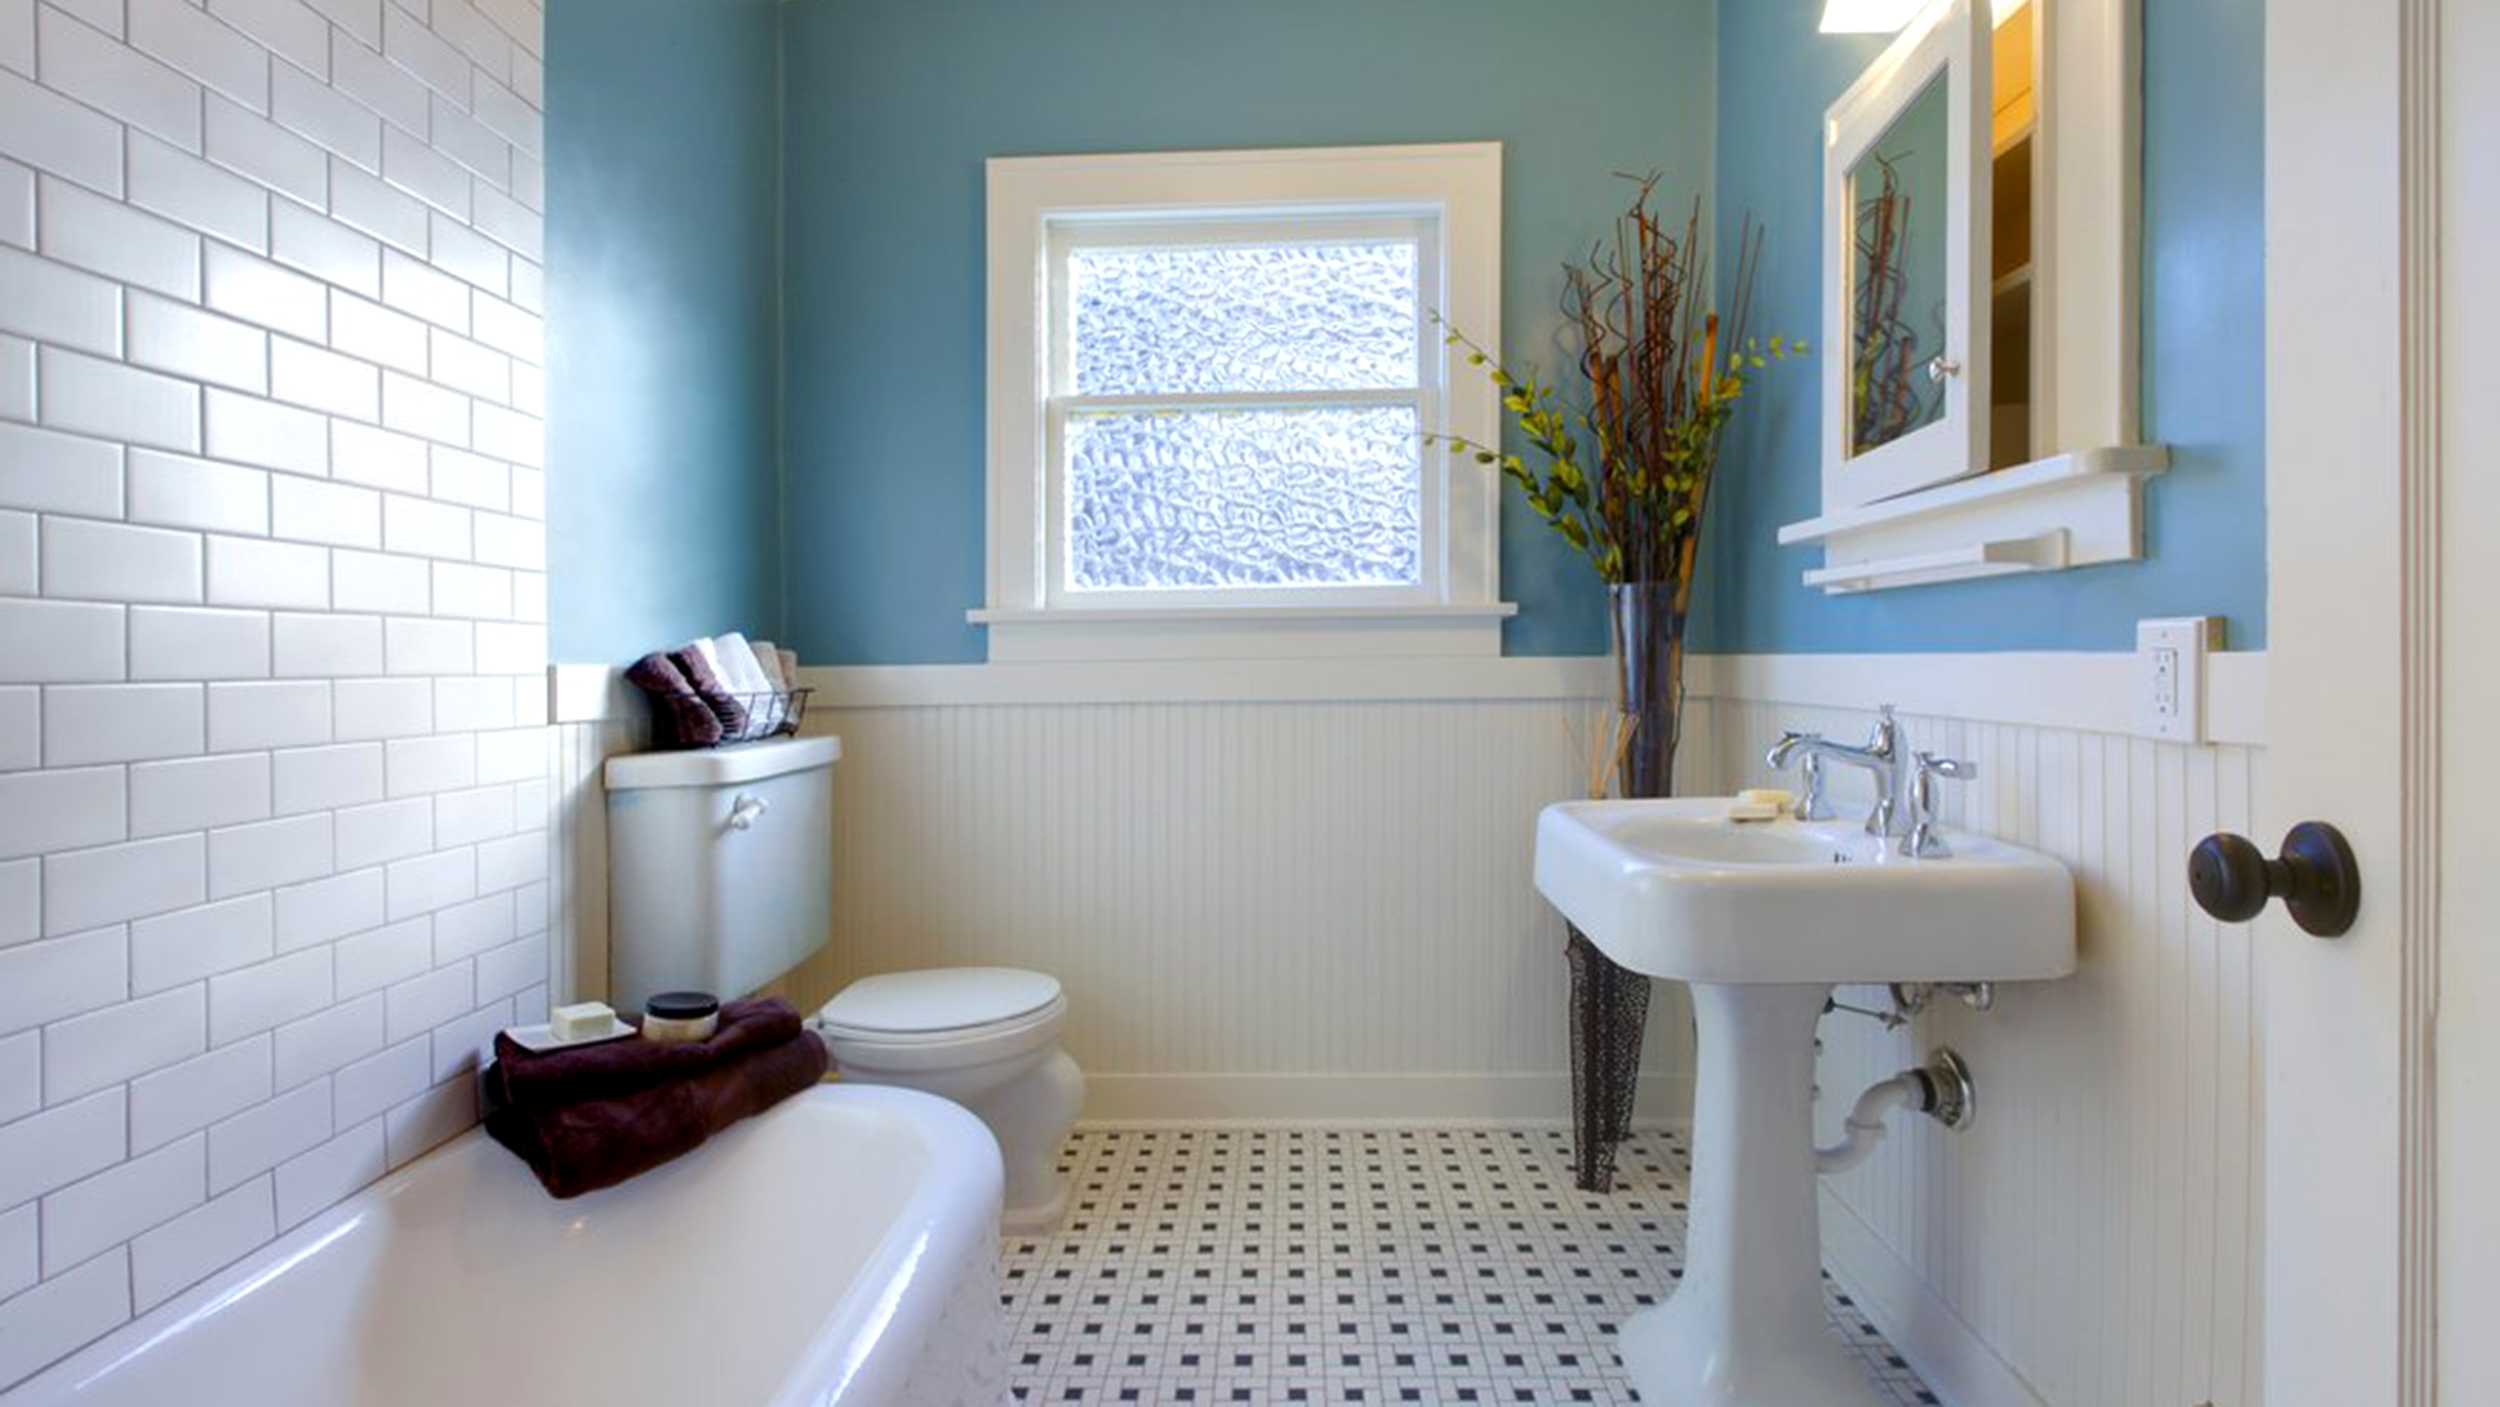 Plumbing For Bathroom Interior 10 Things Your Plumber Wishes You Wouldn't Do  Today